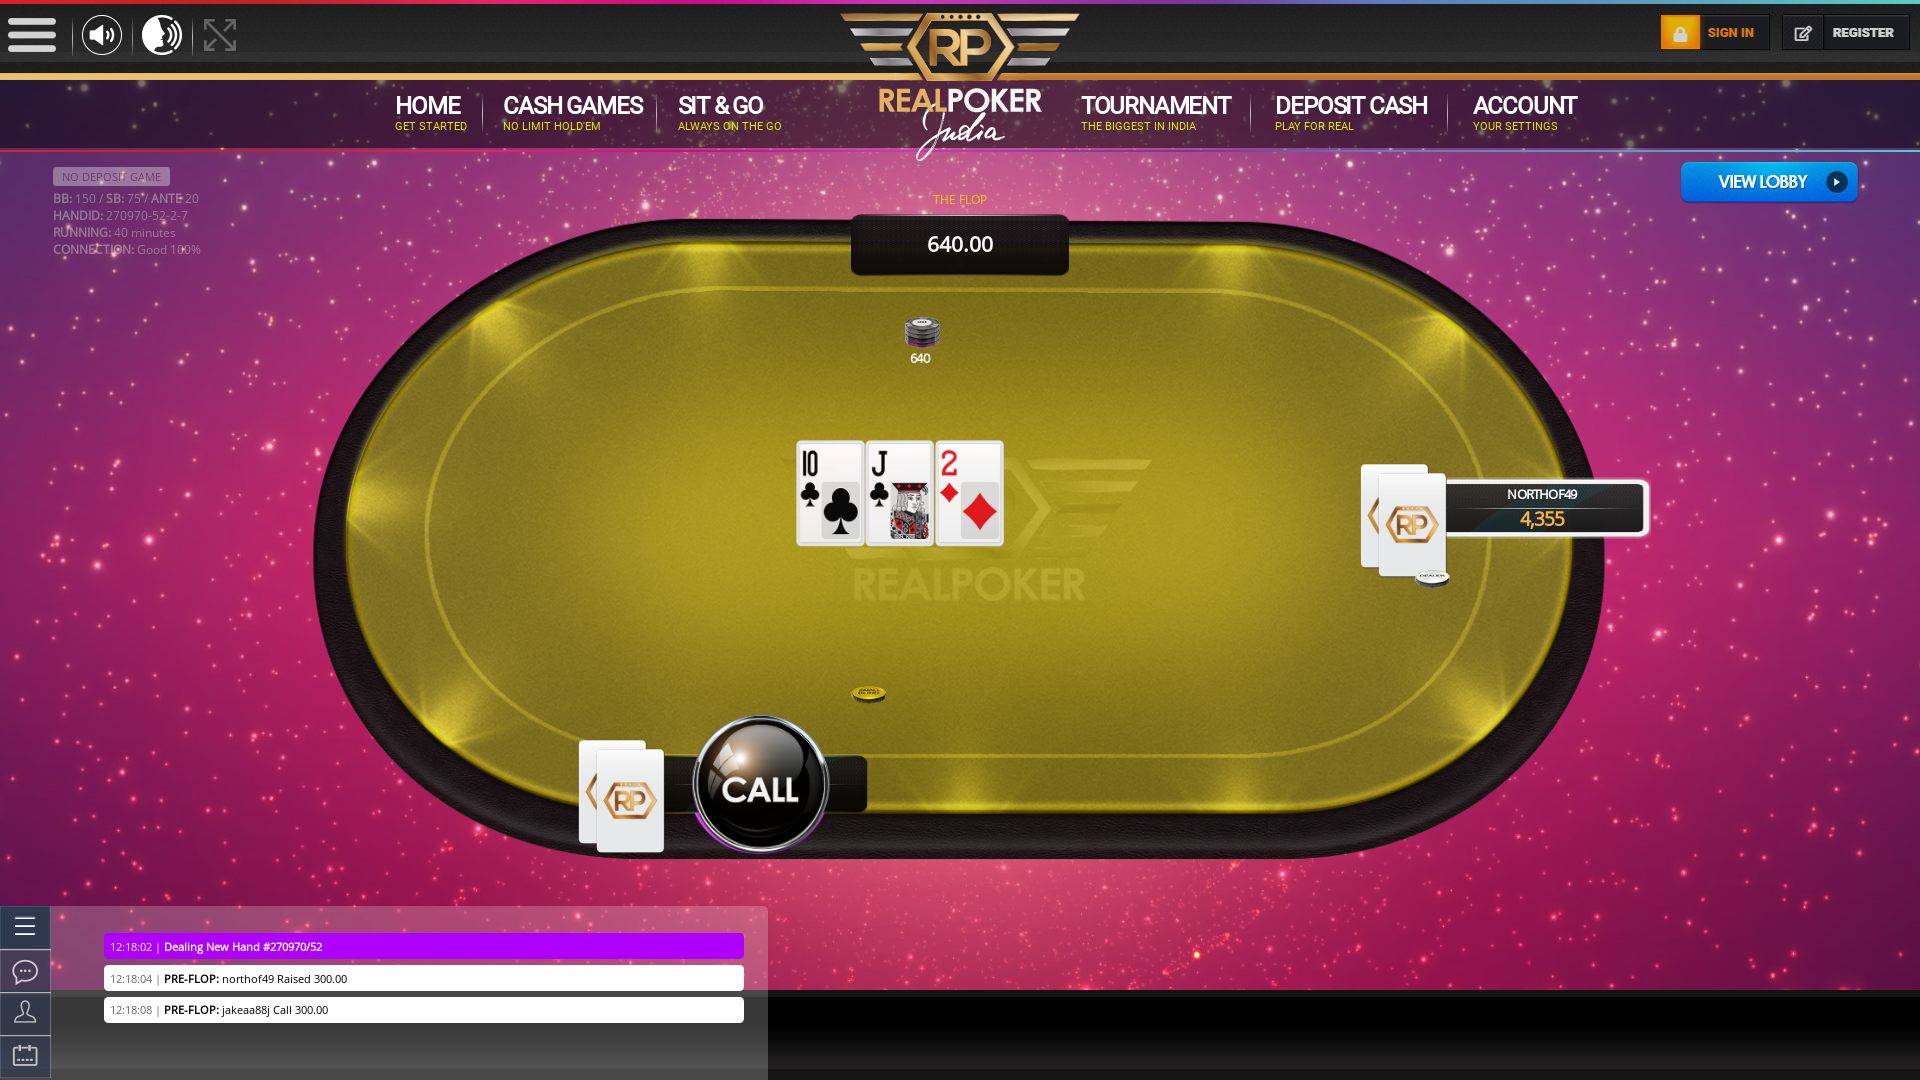 Indian poker on a 10 player table in the 40th minute